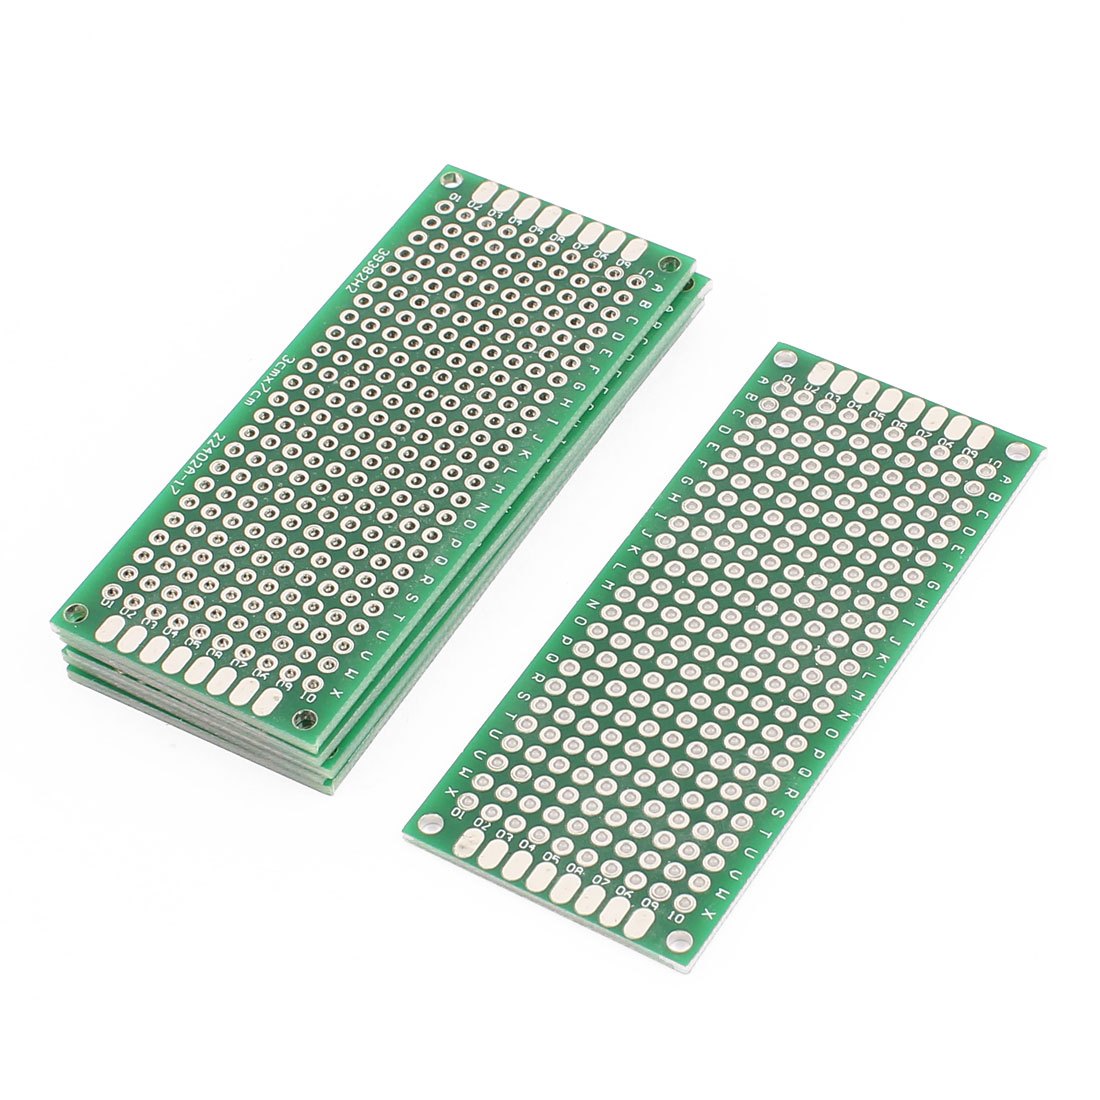 6 Pcs 3 x 7cm Double-Side Prototype Solderable Paper Universal PCB Board